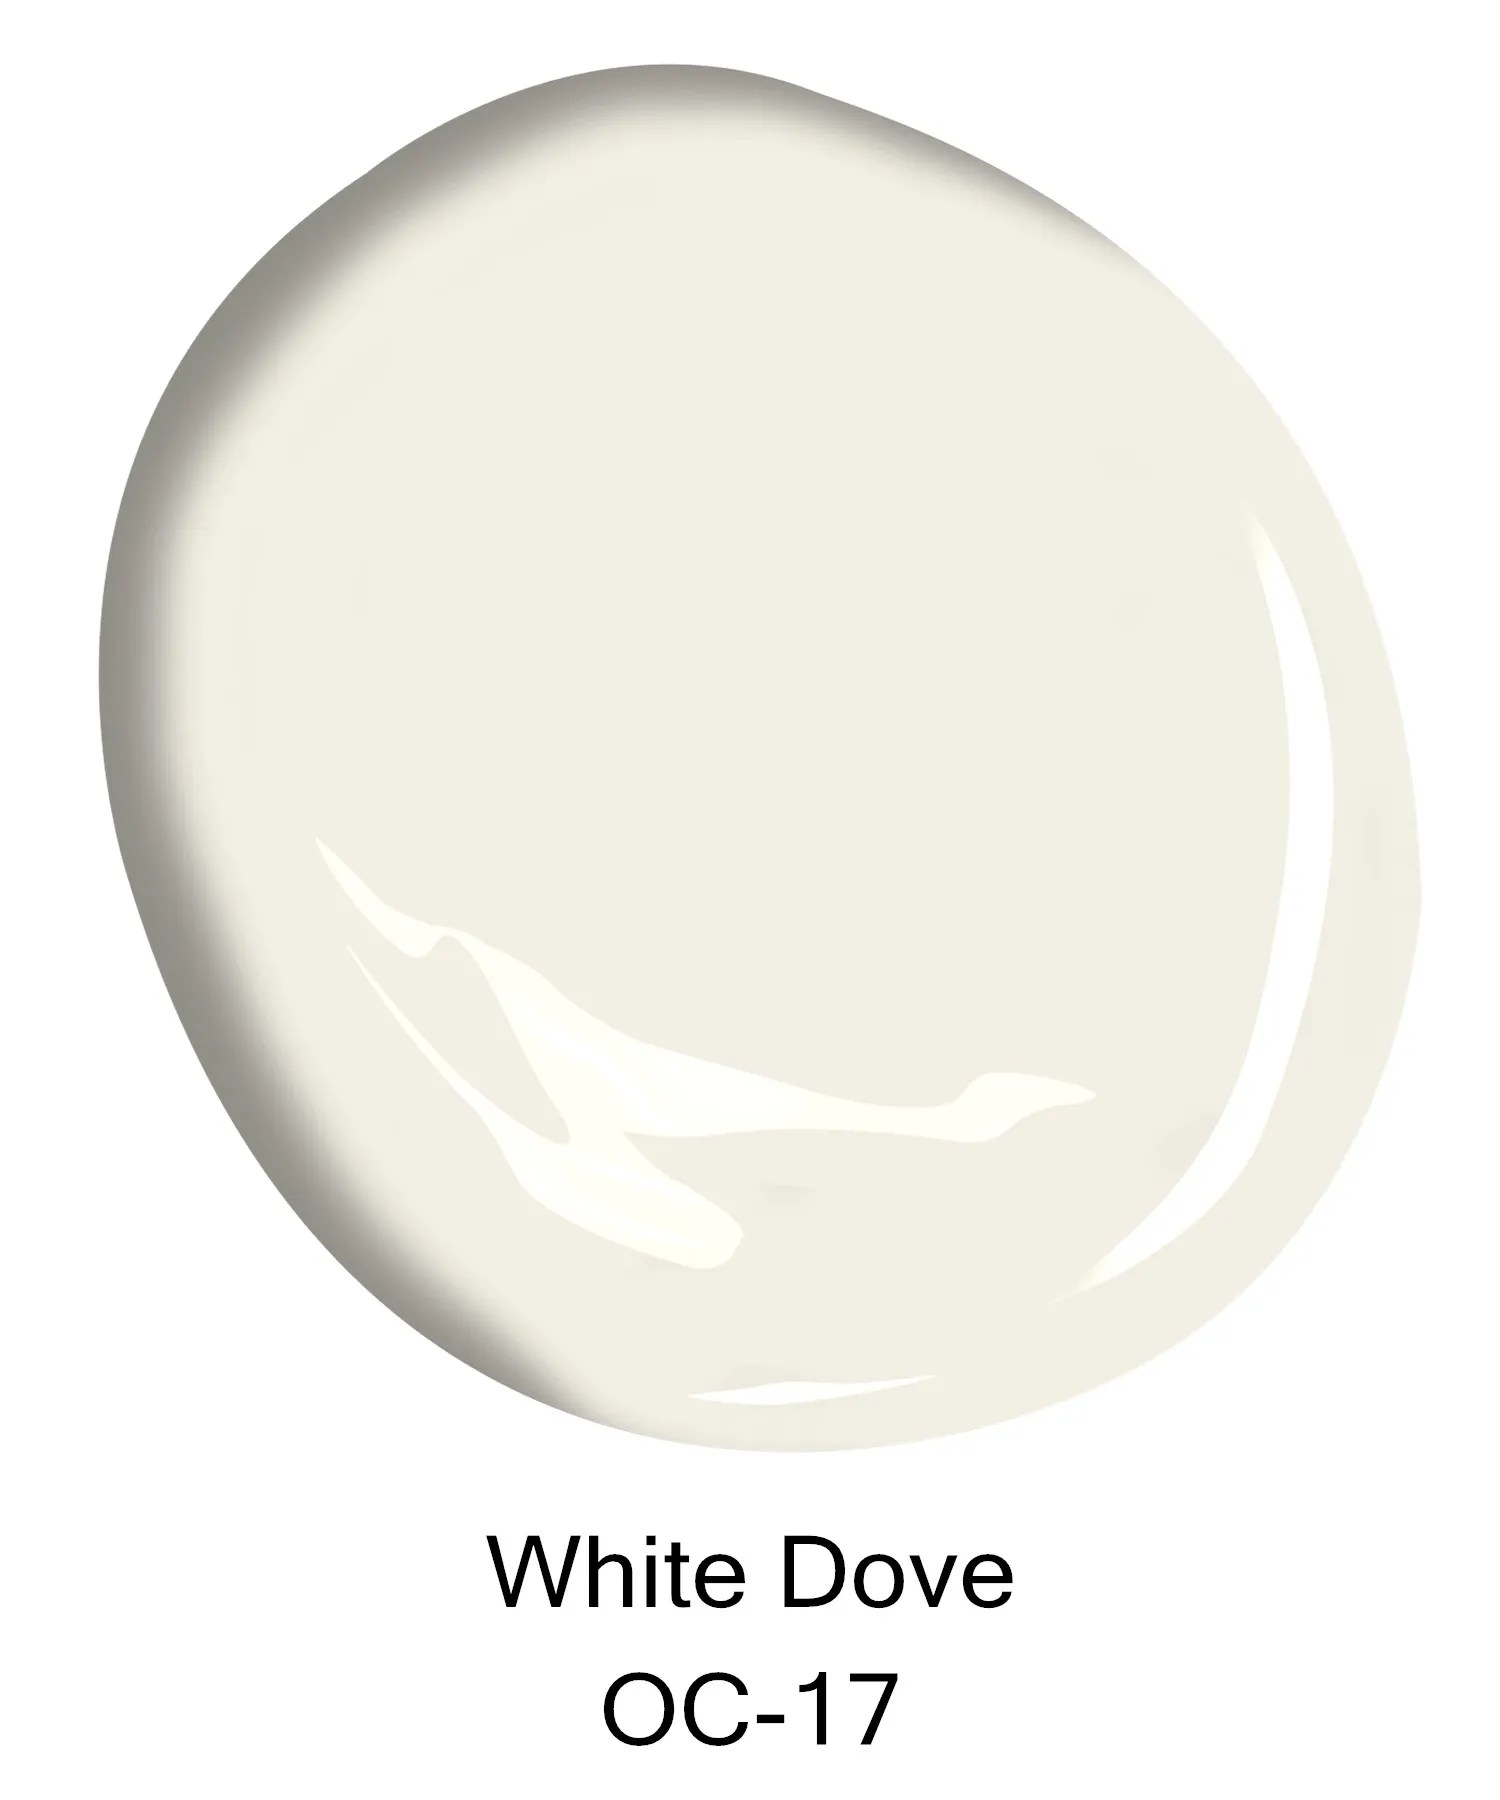 White Photo All About White Dove Paint Color Architectural Digest